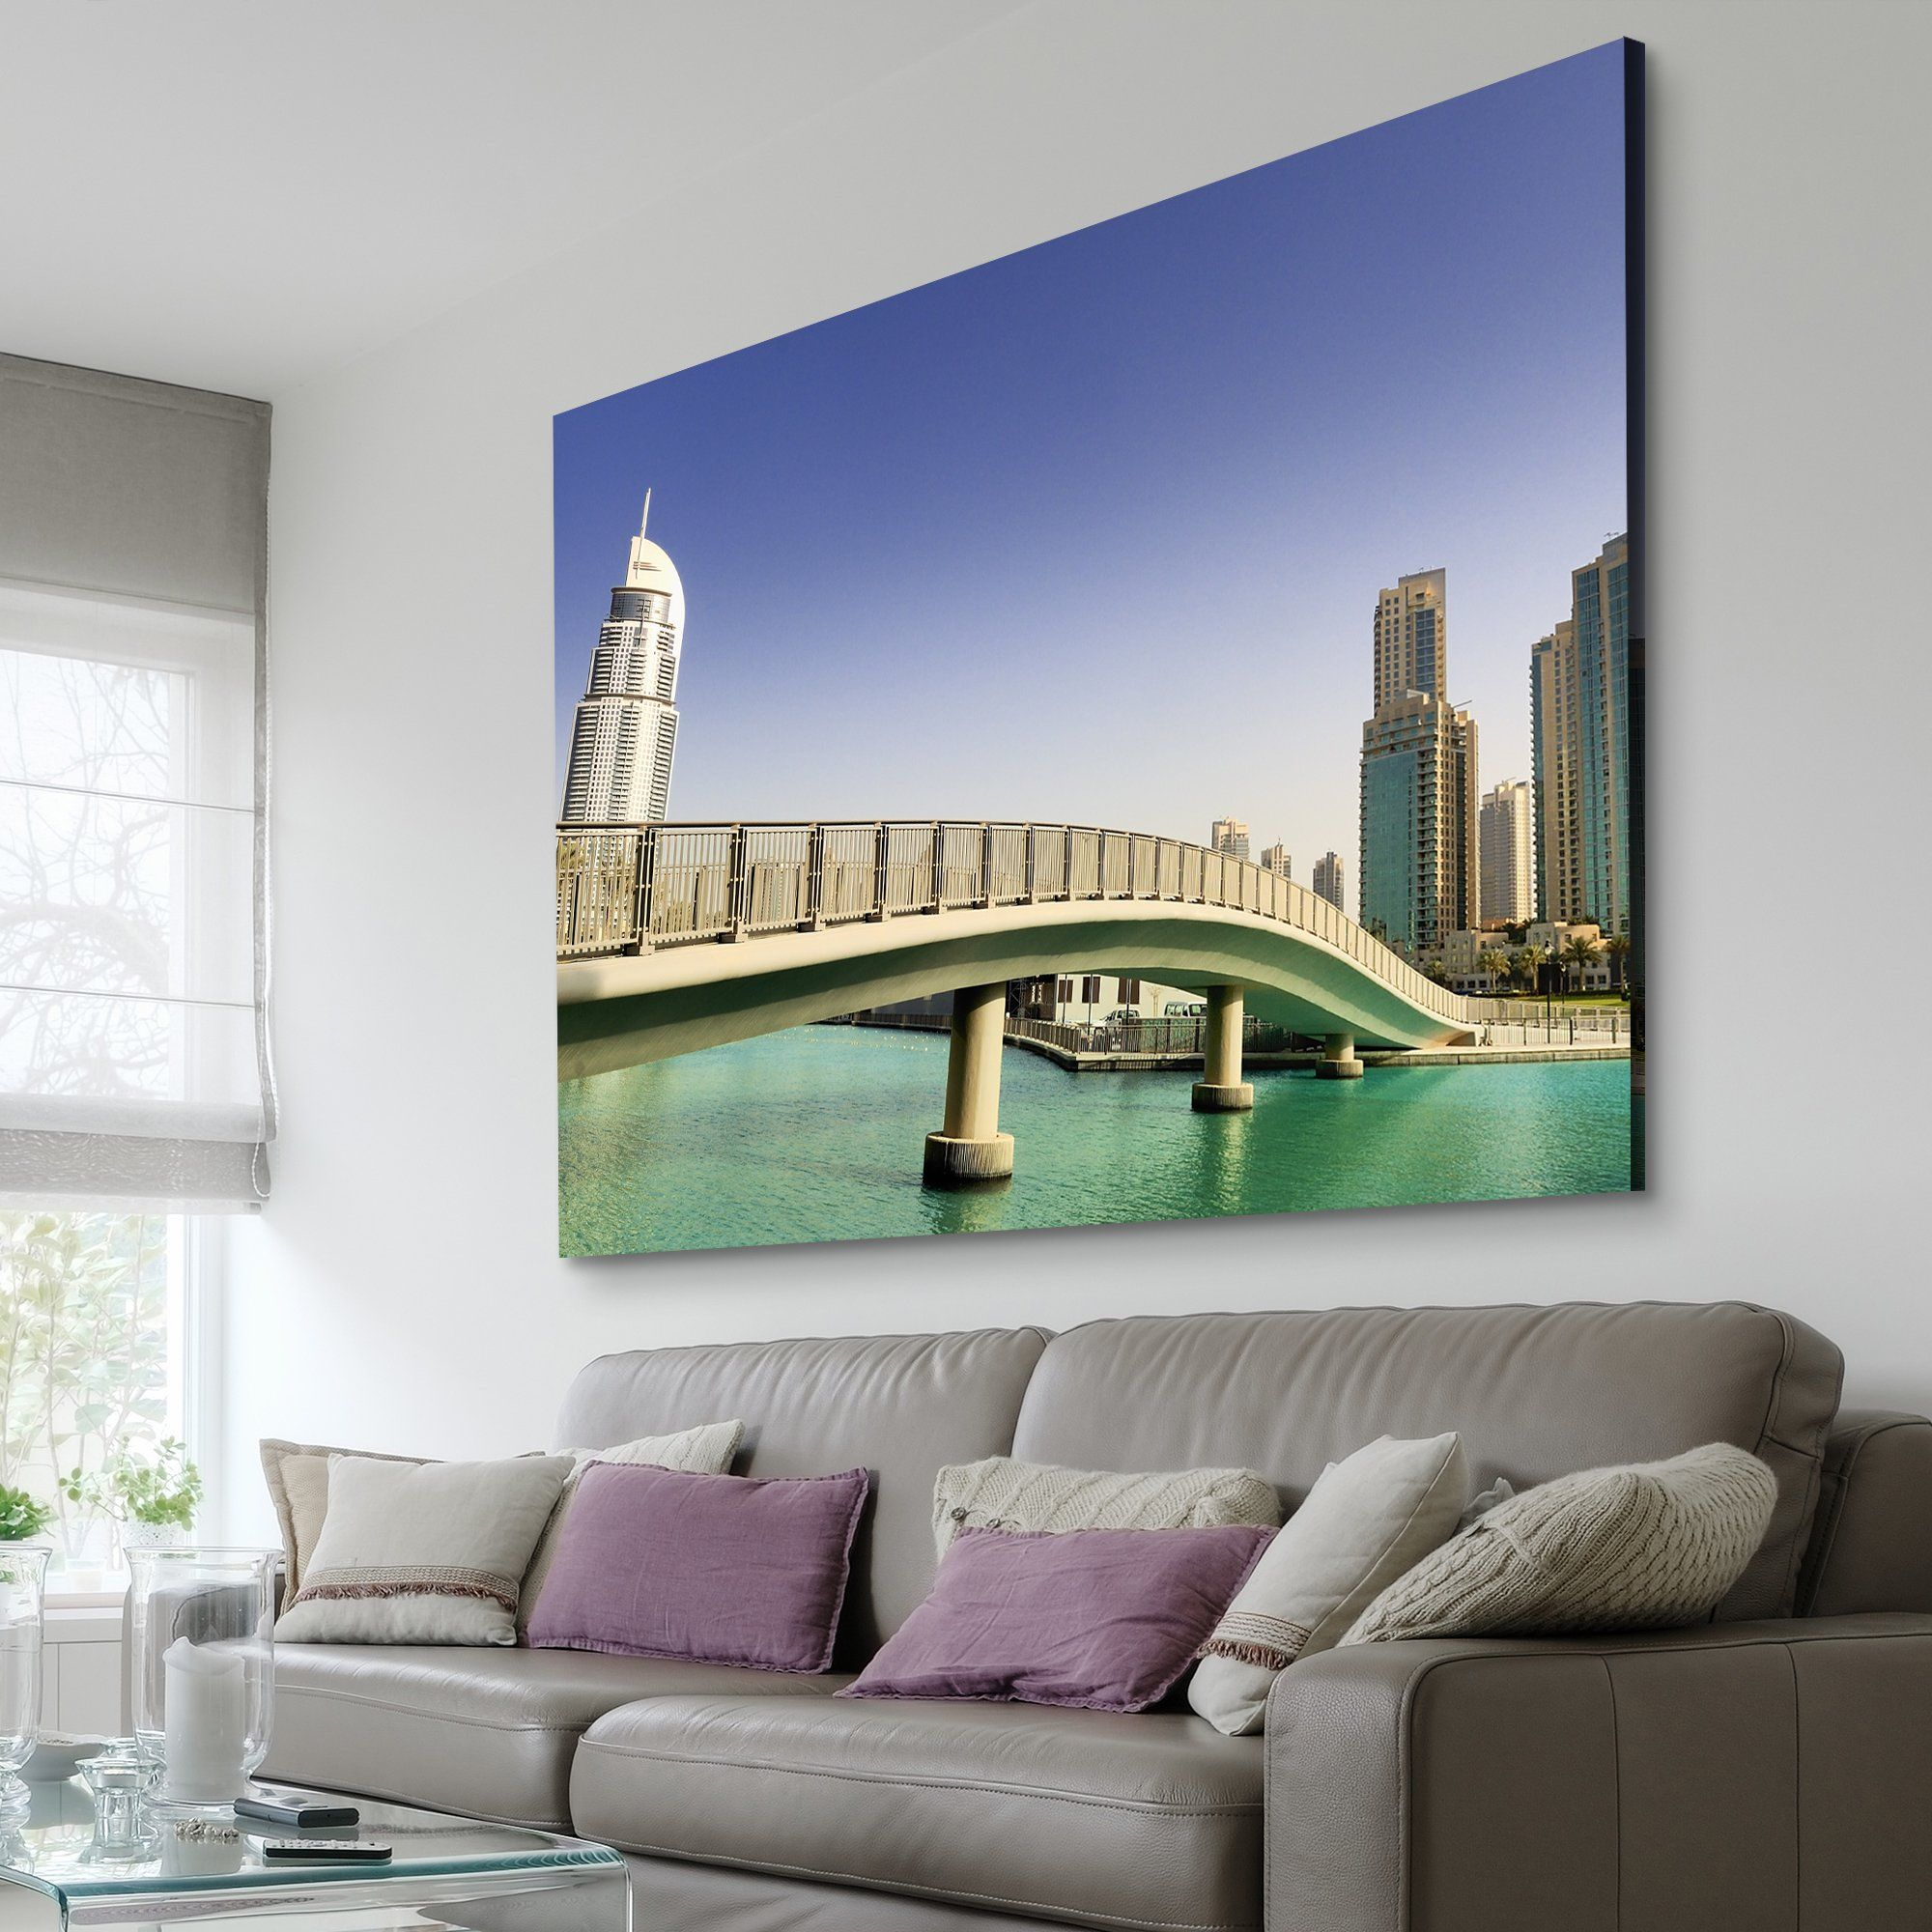 Footbridge In UAE art